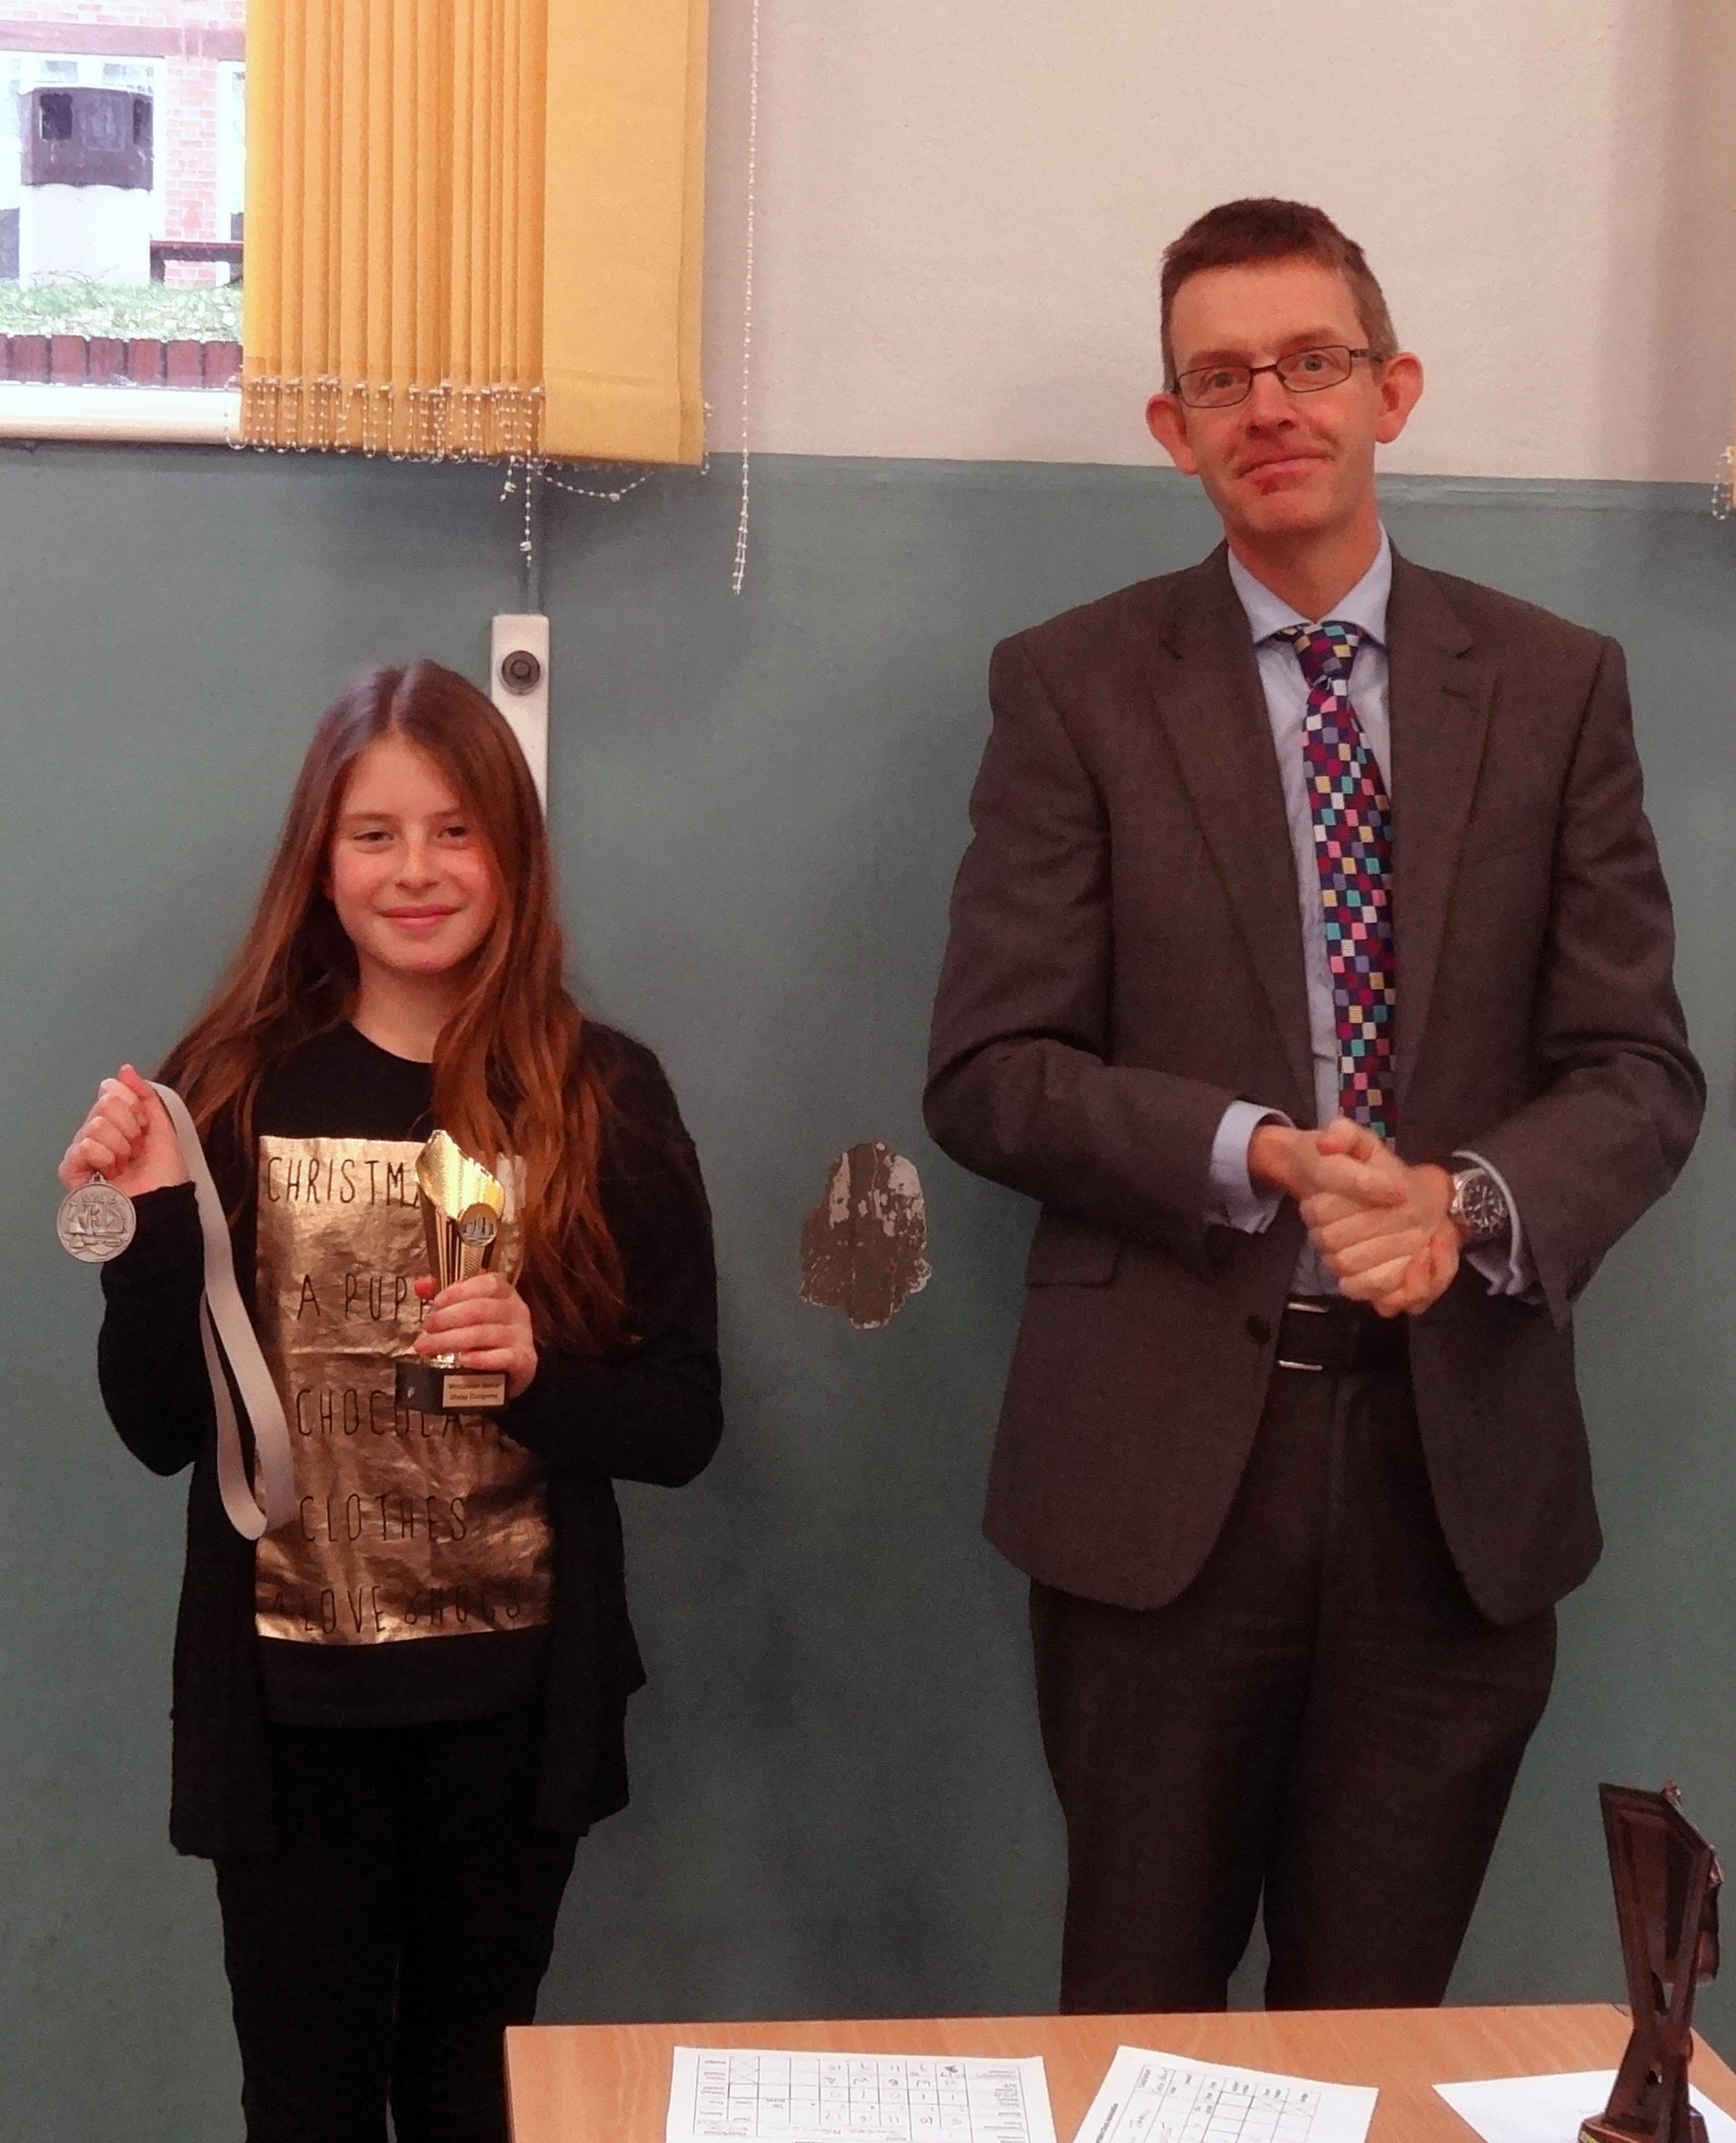 THE KING'S SCHOOL: Tamara Marsden with trophy (left) and Jon Ricketts (right)